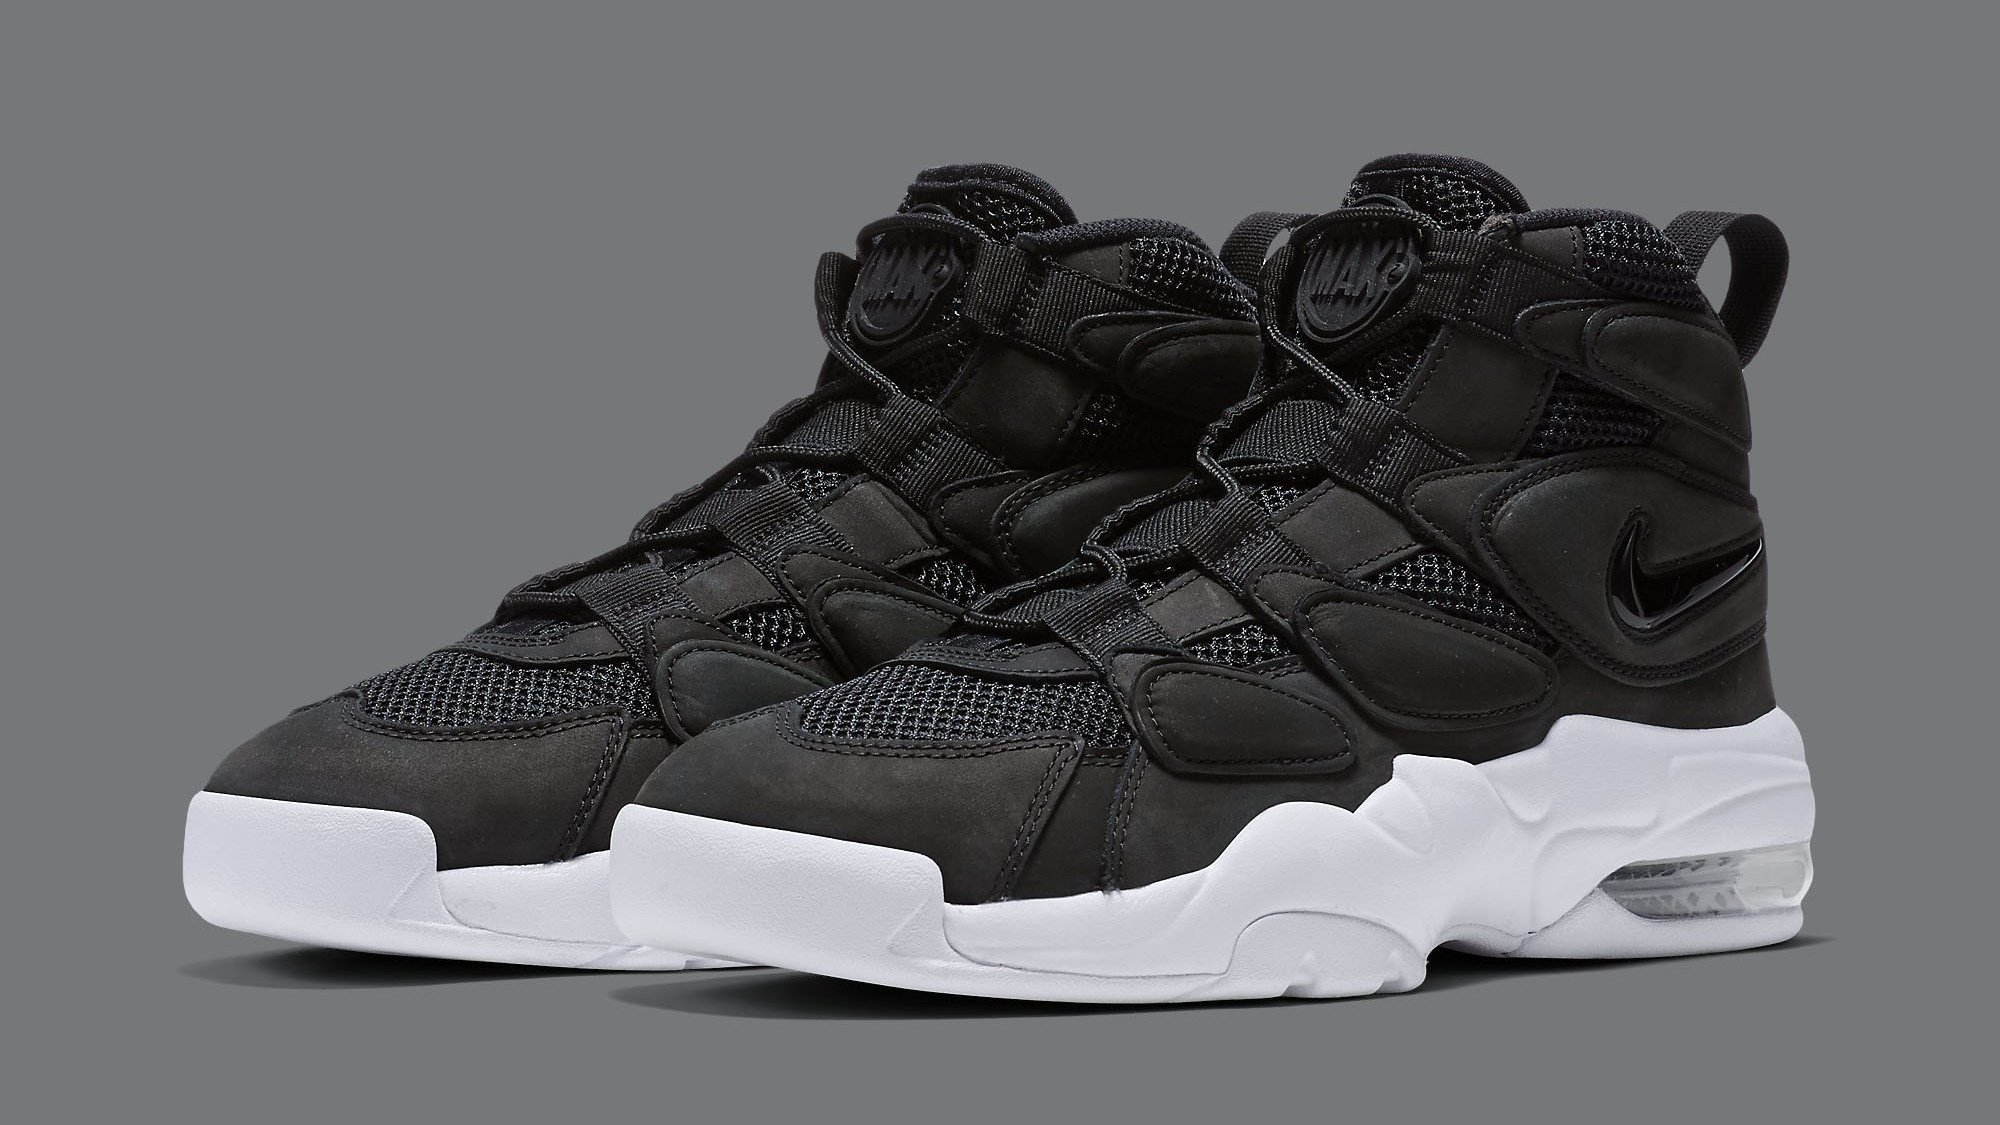 nike air max uptempo 2 sole collector. Black Bedroom Furniture Sets. Home Design Ideas